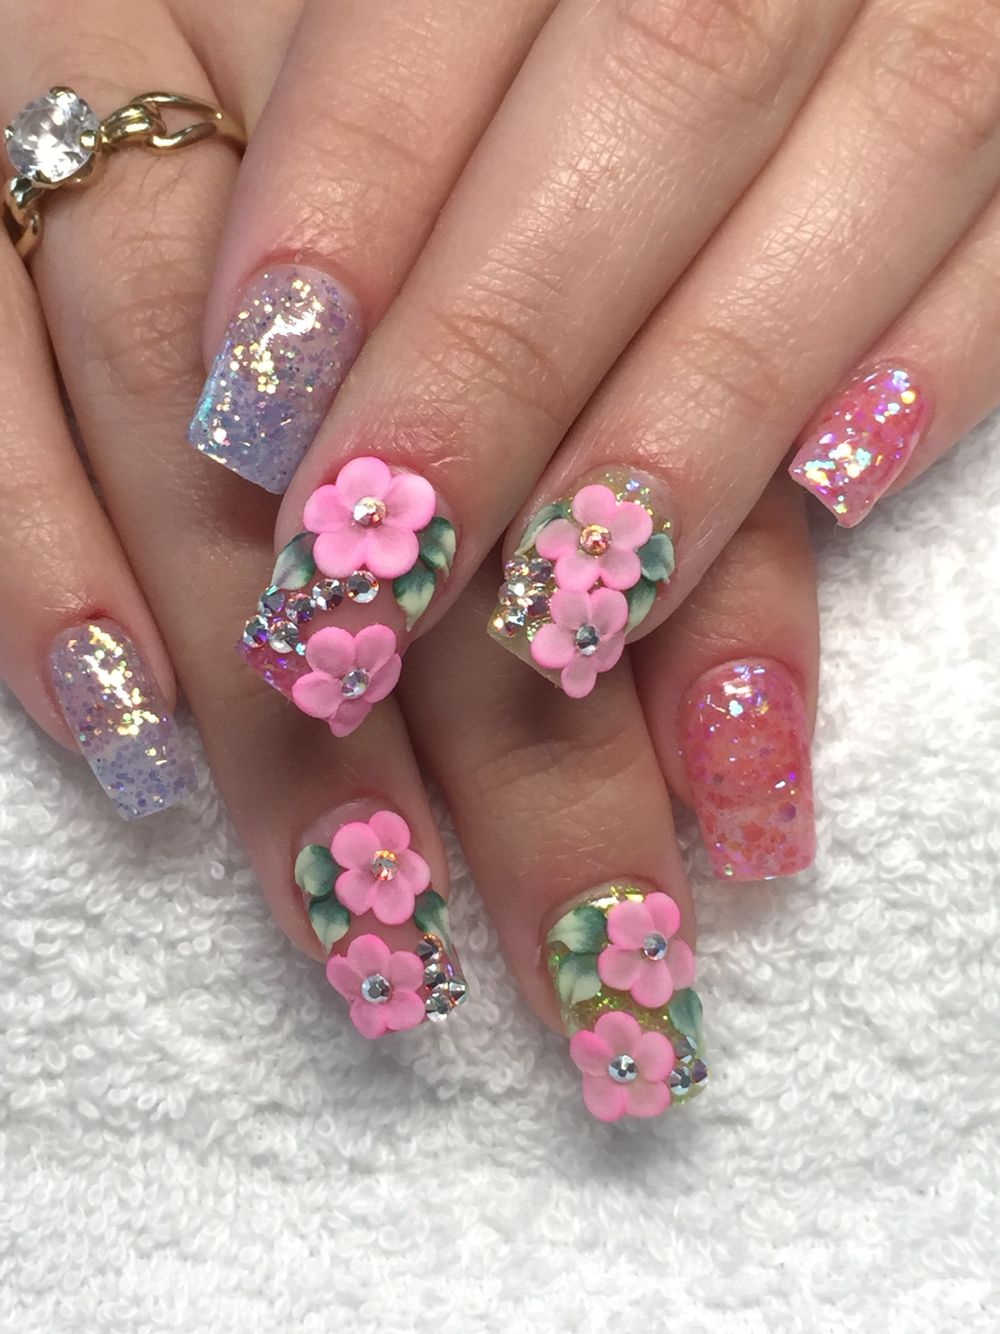 Spring Nails Design Acrylic Nails With 3d Acrylic Design Nail Designs Spring Nails Nail Designs